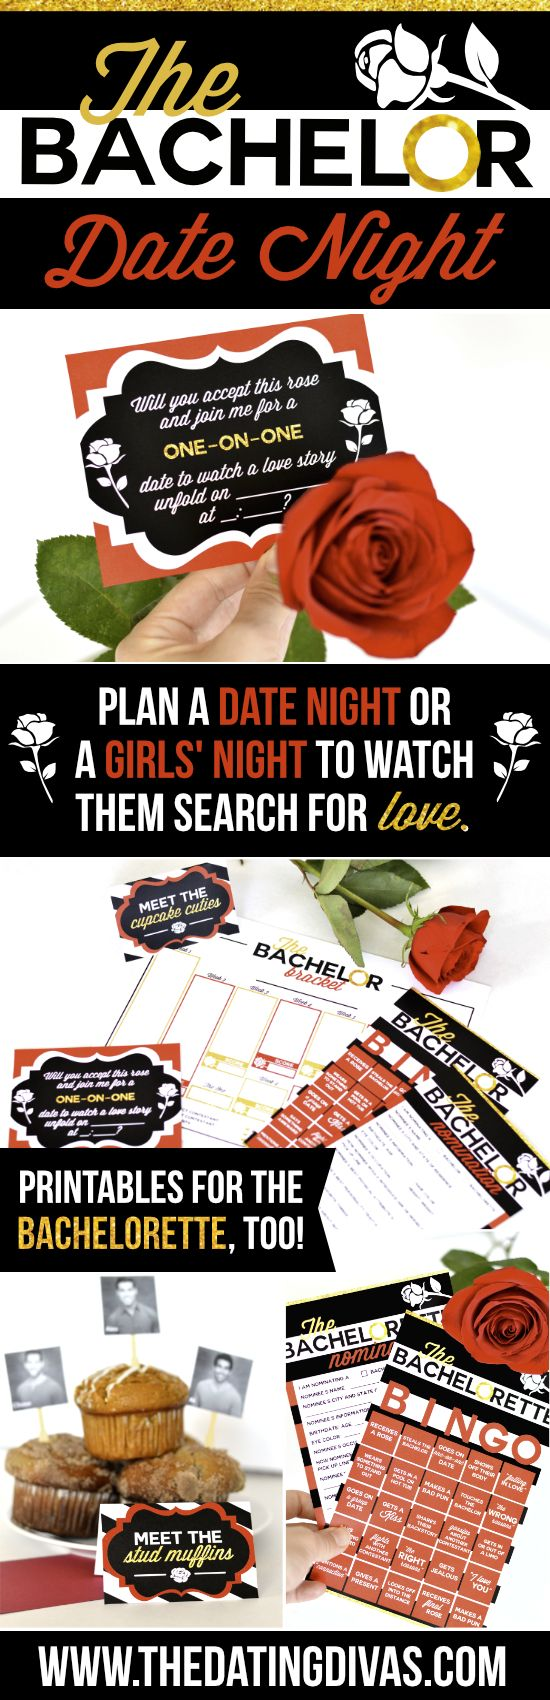 The Bachelor Viewing Party Date Night- fun printables to make it a fun night!